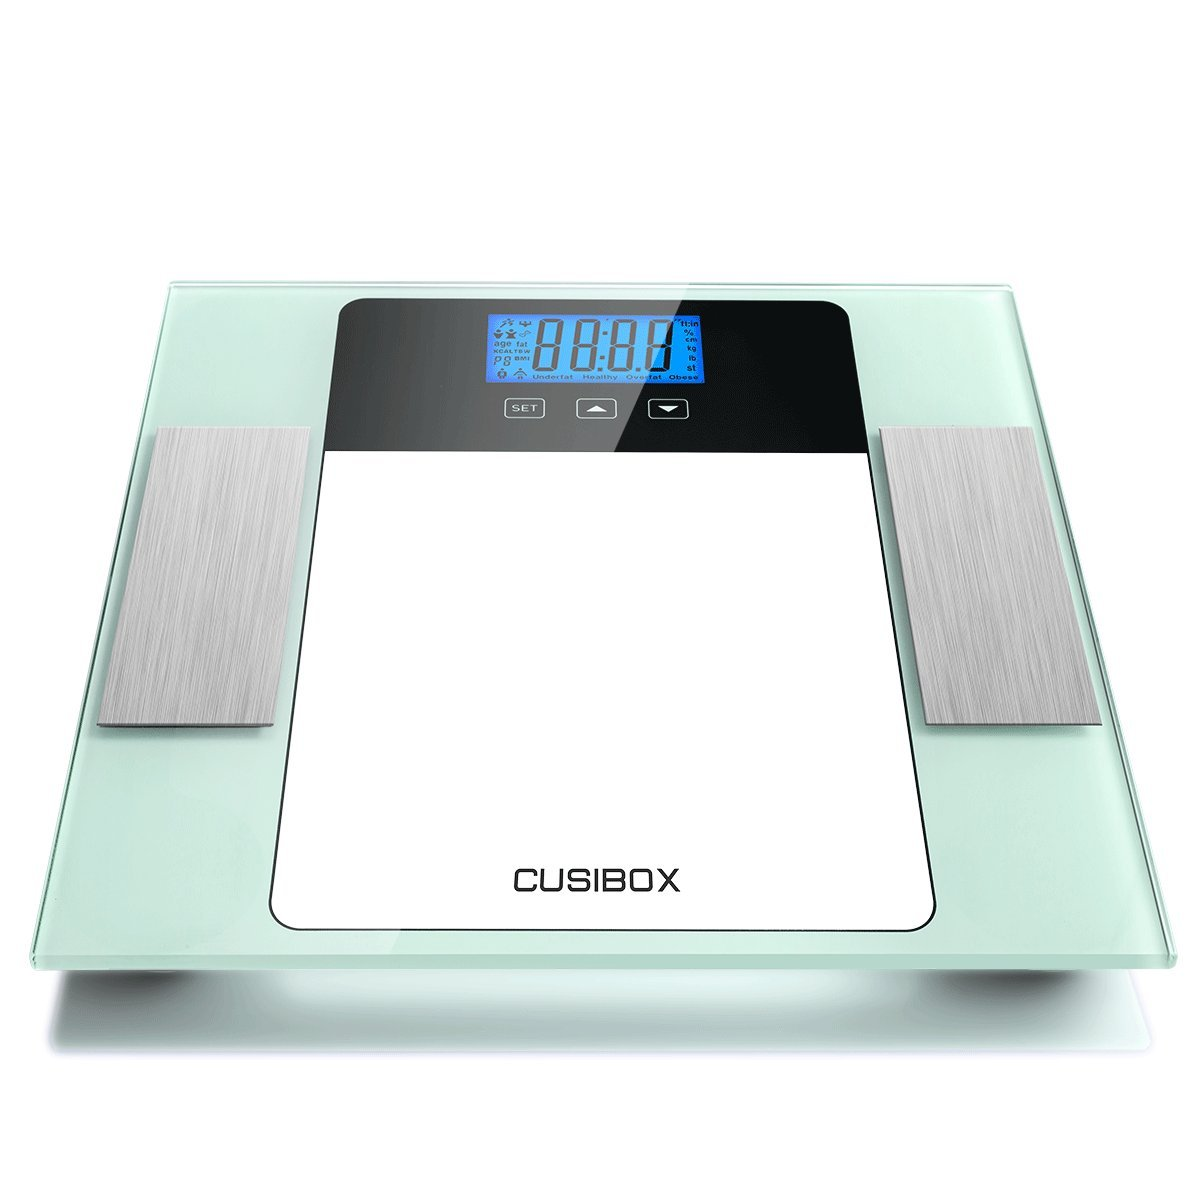 Digital Body Weight Bathroom Scale by CUSIBOX, Highly Accurate Digital Bathroom Body Scale with Step-on Technology, Body Weight Measure, Tempered Glass, 10 Users Memory Mode